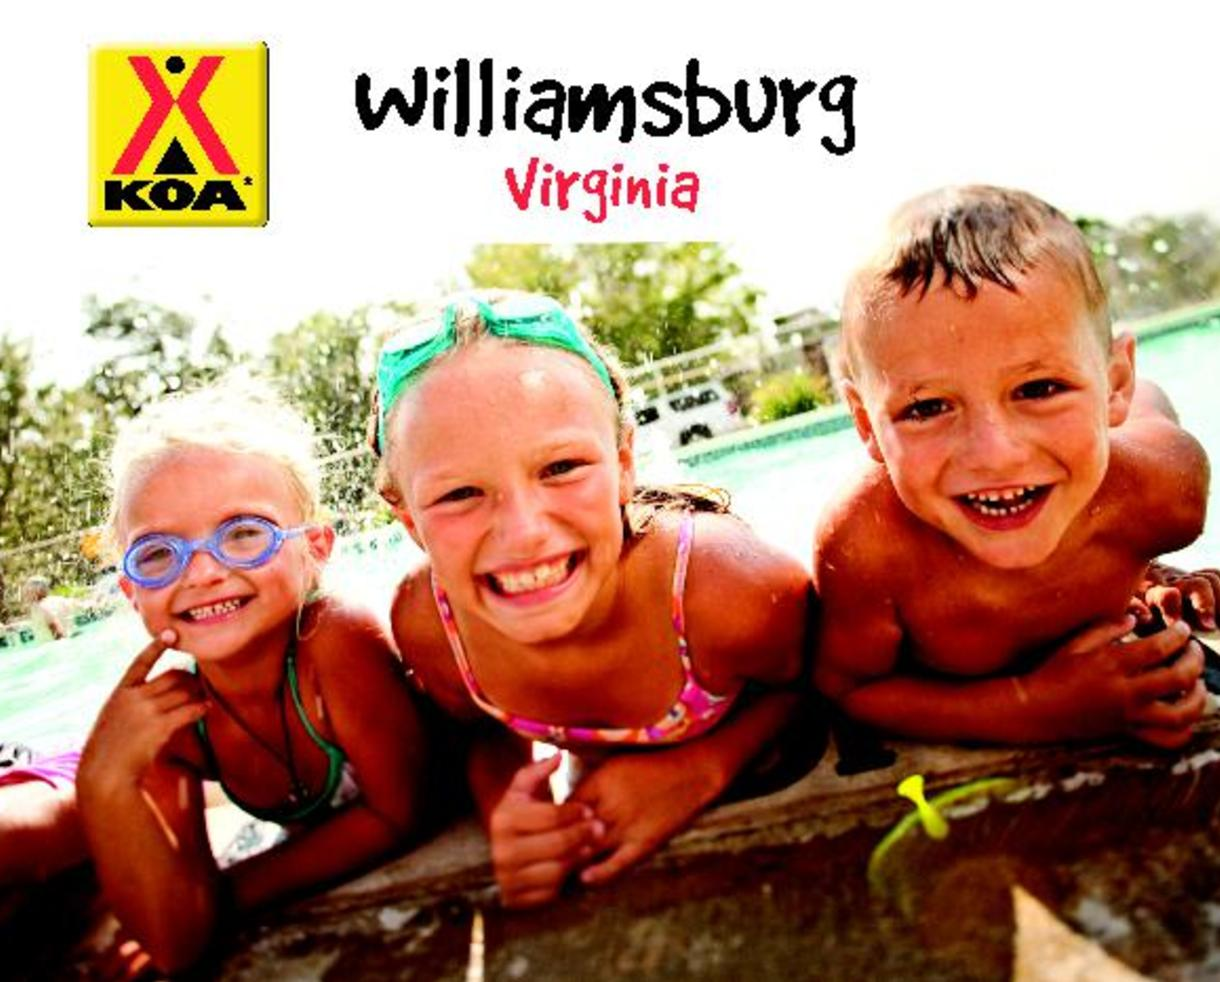 $129 for WILLIAMSBURG KOA SUMMER 2-Night CABIN or 3-Night CAMPSITE Getaway (41% Off)